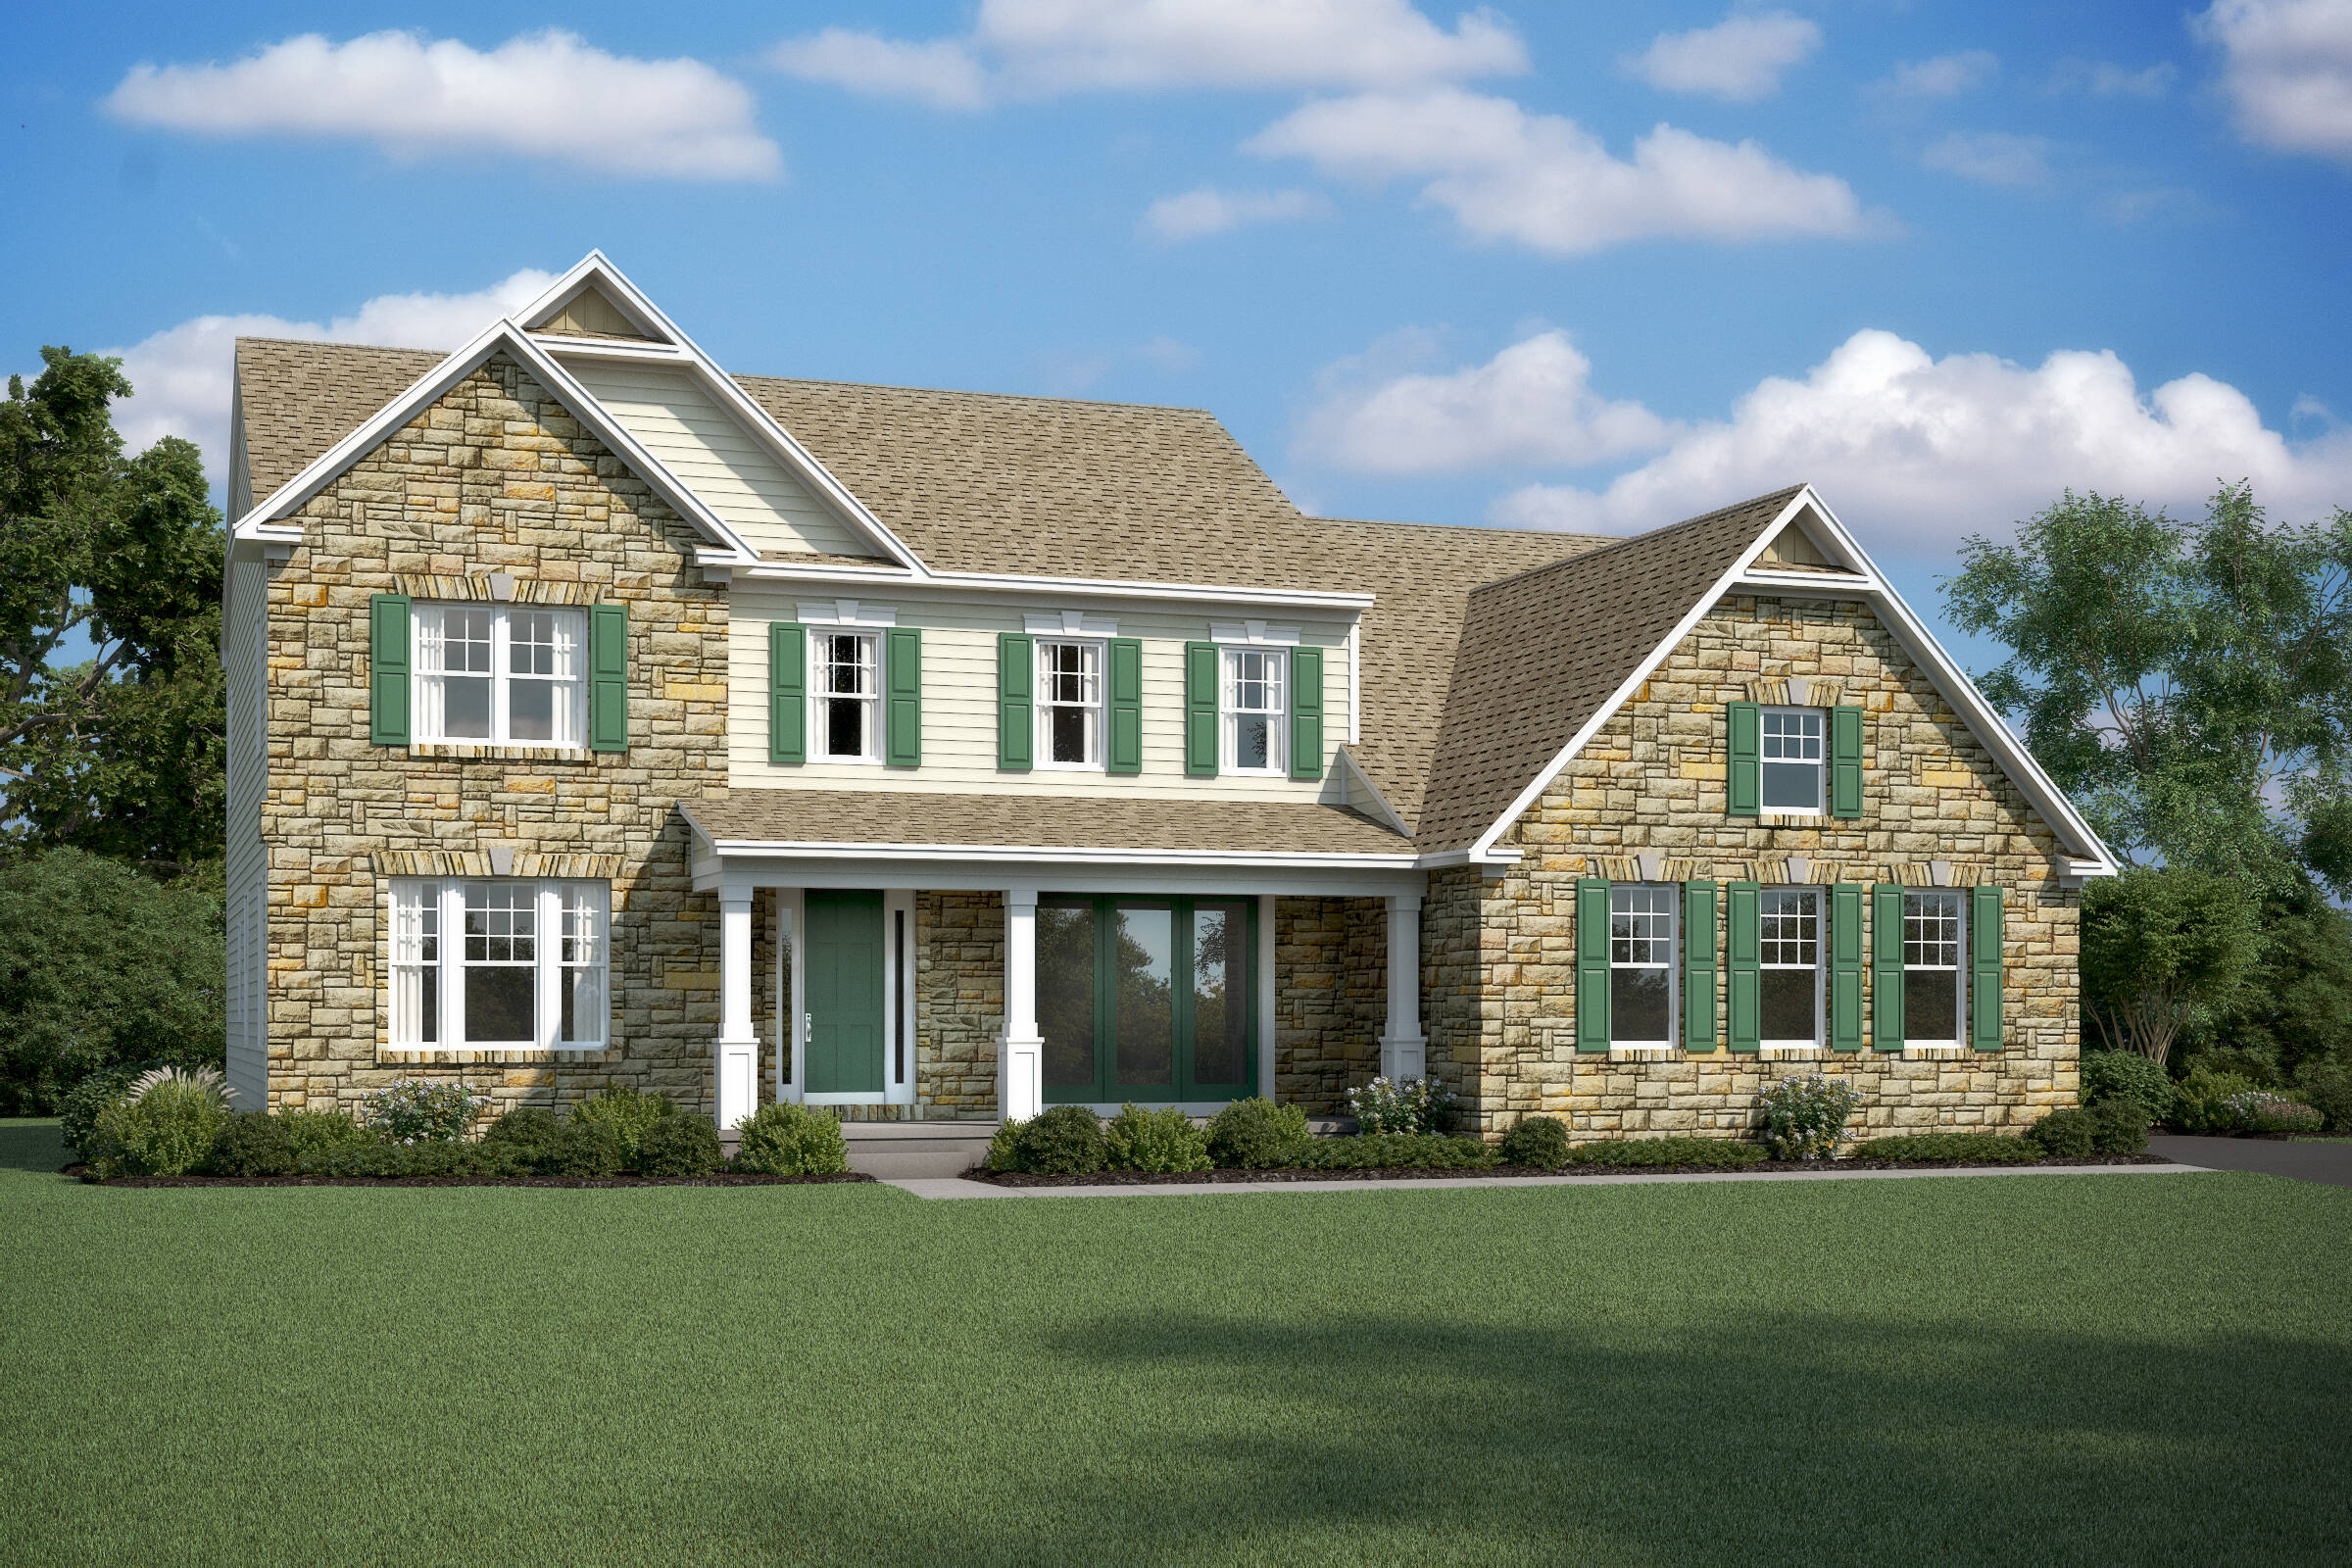 rhode island II bt opt stone new homes at alexander lakes